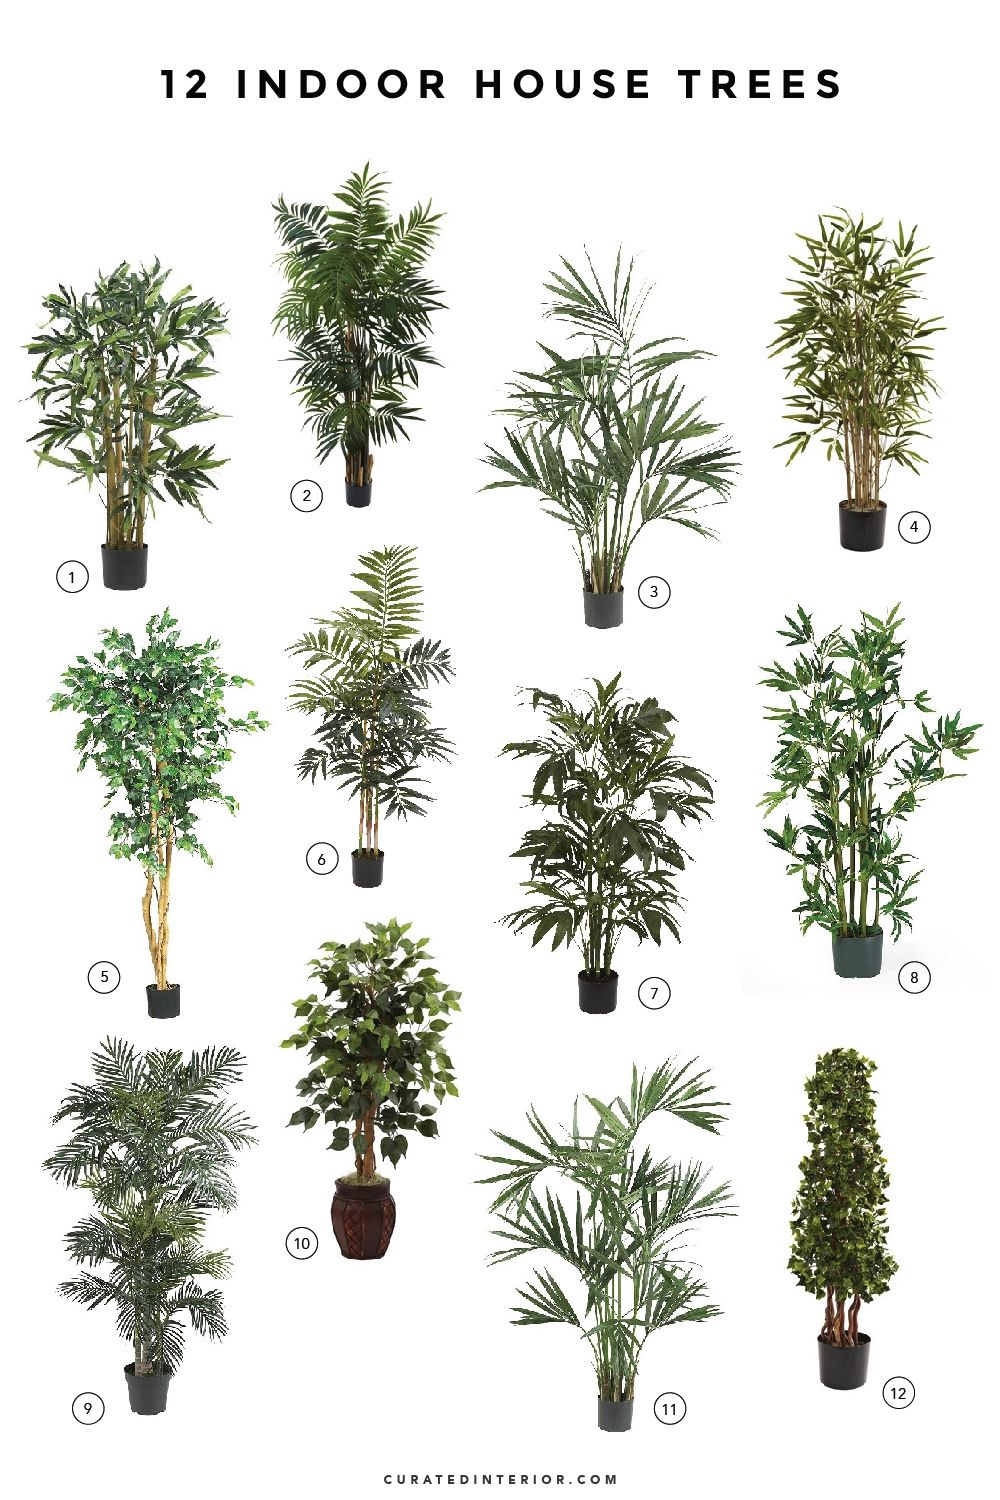 12 Lovely Indoor House Trees Indoor Tree Plants House Tree